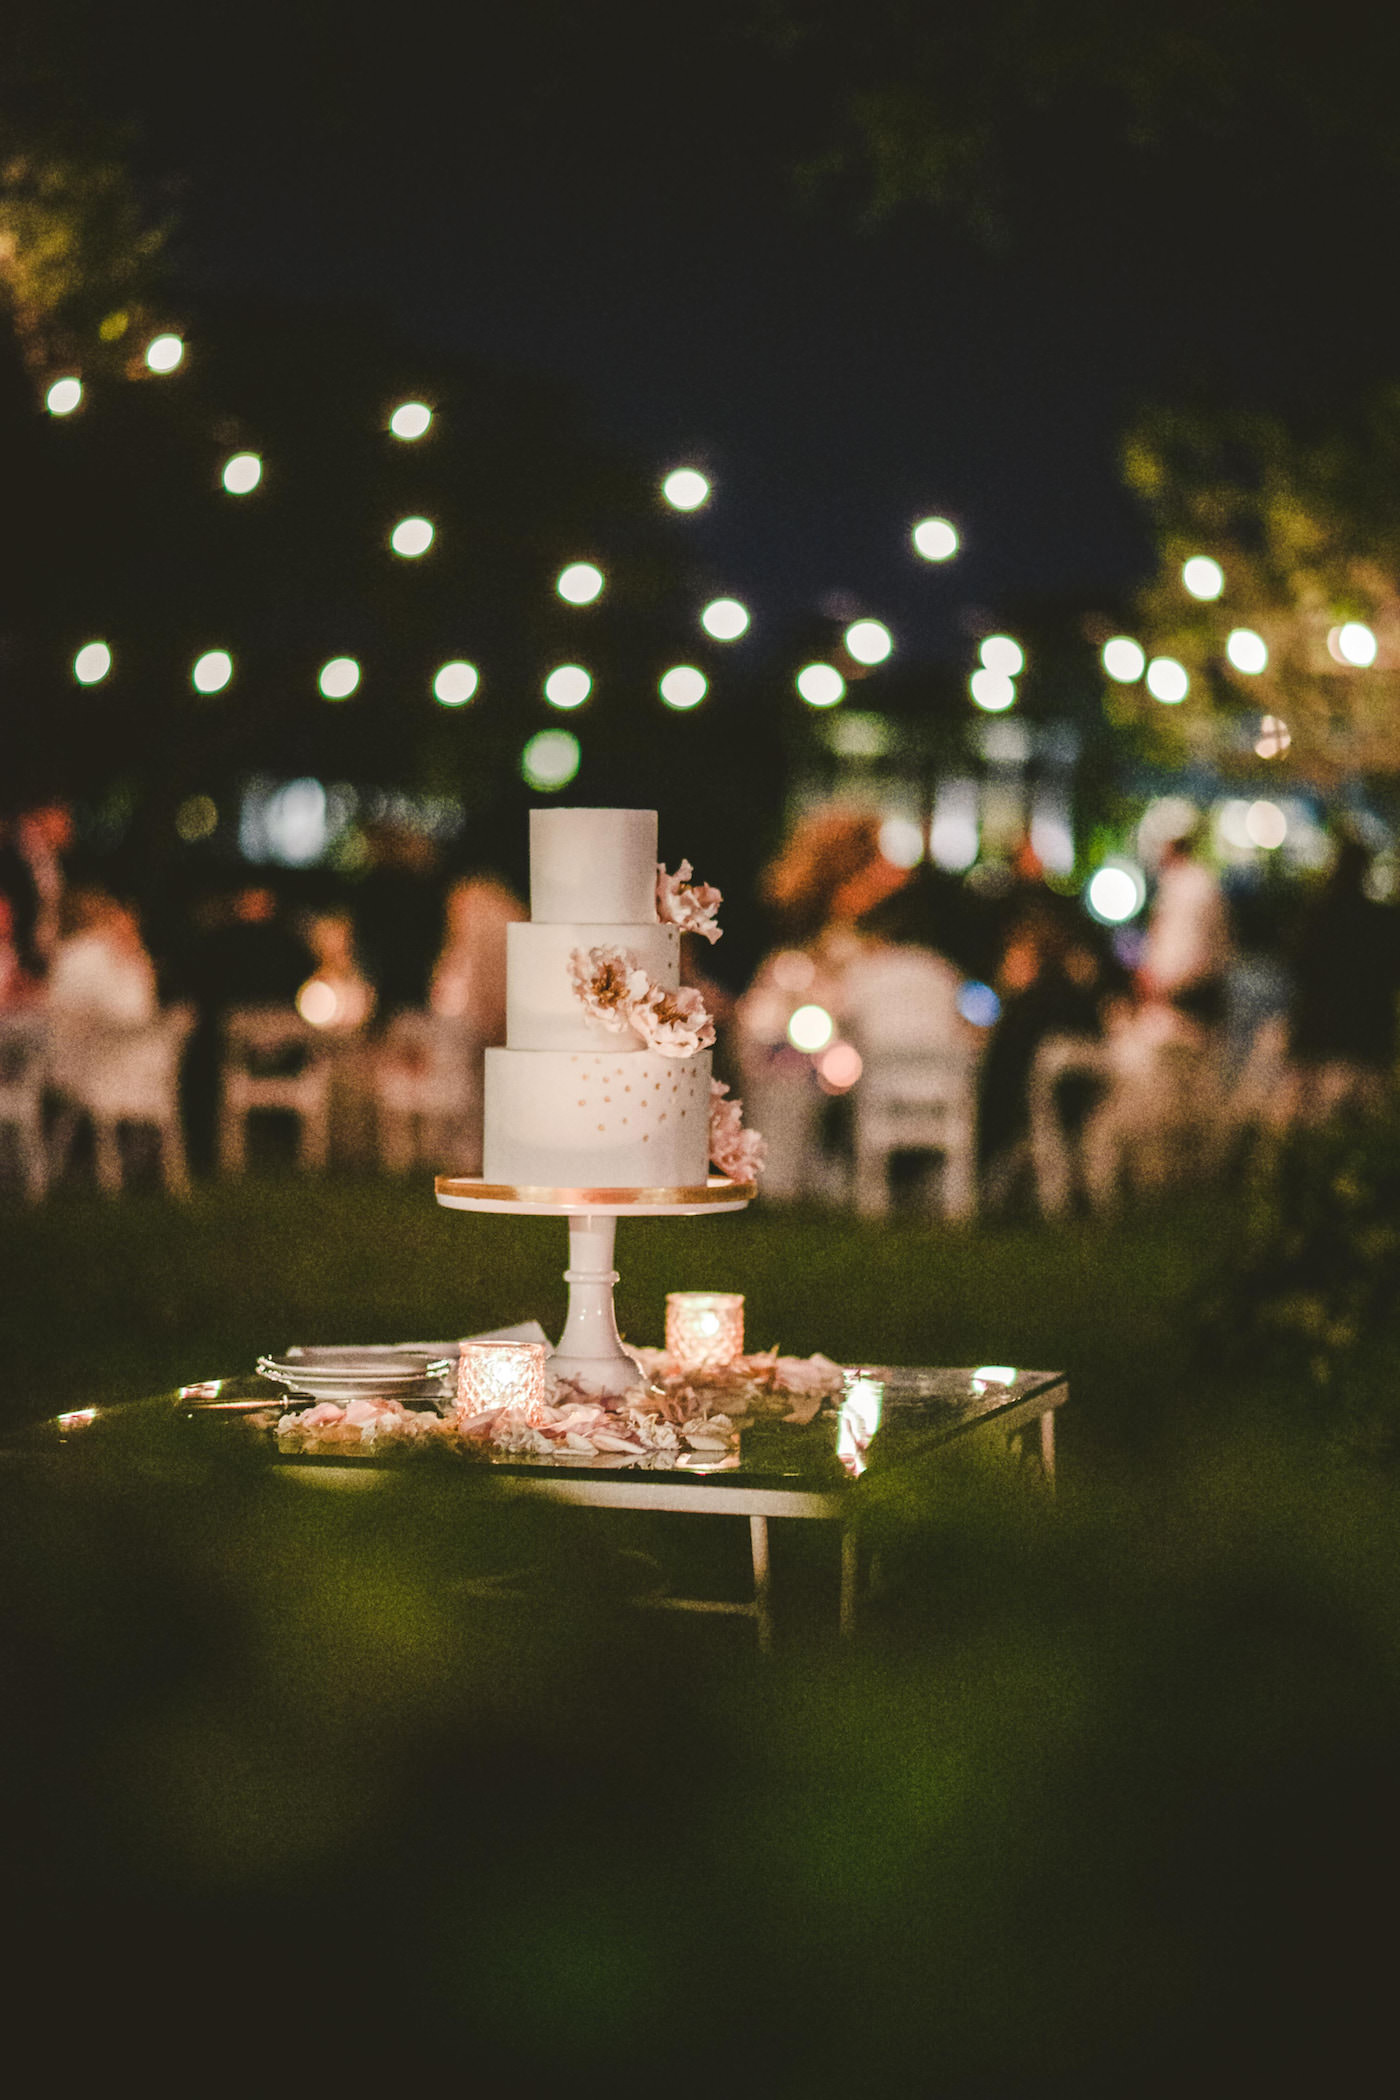 Tampa Bay Cake Company Three Tier Wedding Cake with Rose Gold Polka Dots and Blush Pink Sugar Flower Peonies on a Round Pedestal Cake Stand surrounded by Petals and Candles | Outdoor Tampa Wedding with Canopy String Light Edison Bulb Strands